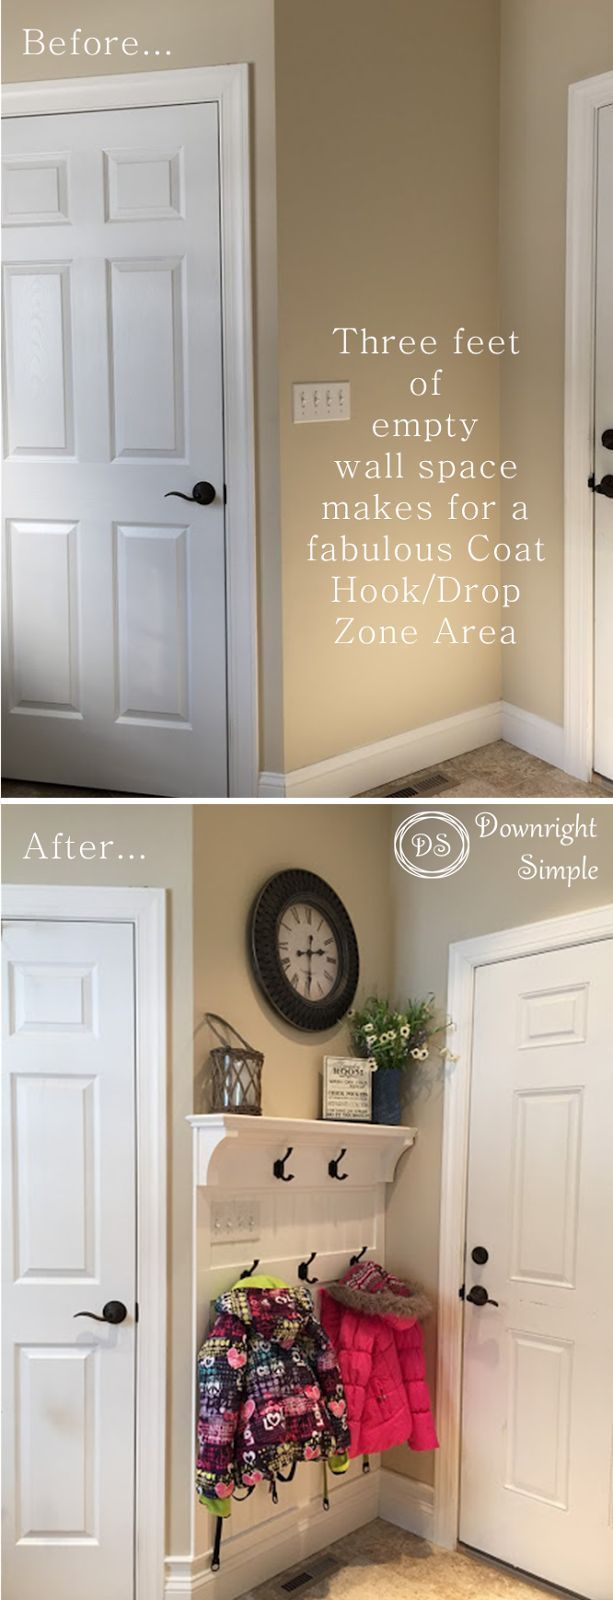 best 10+ small house decorating ideas on pinterest | small house